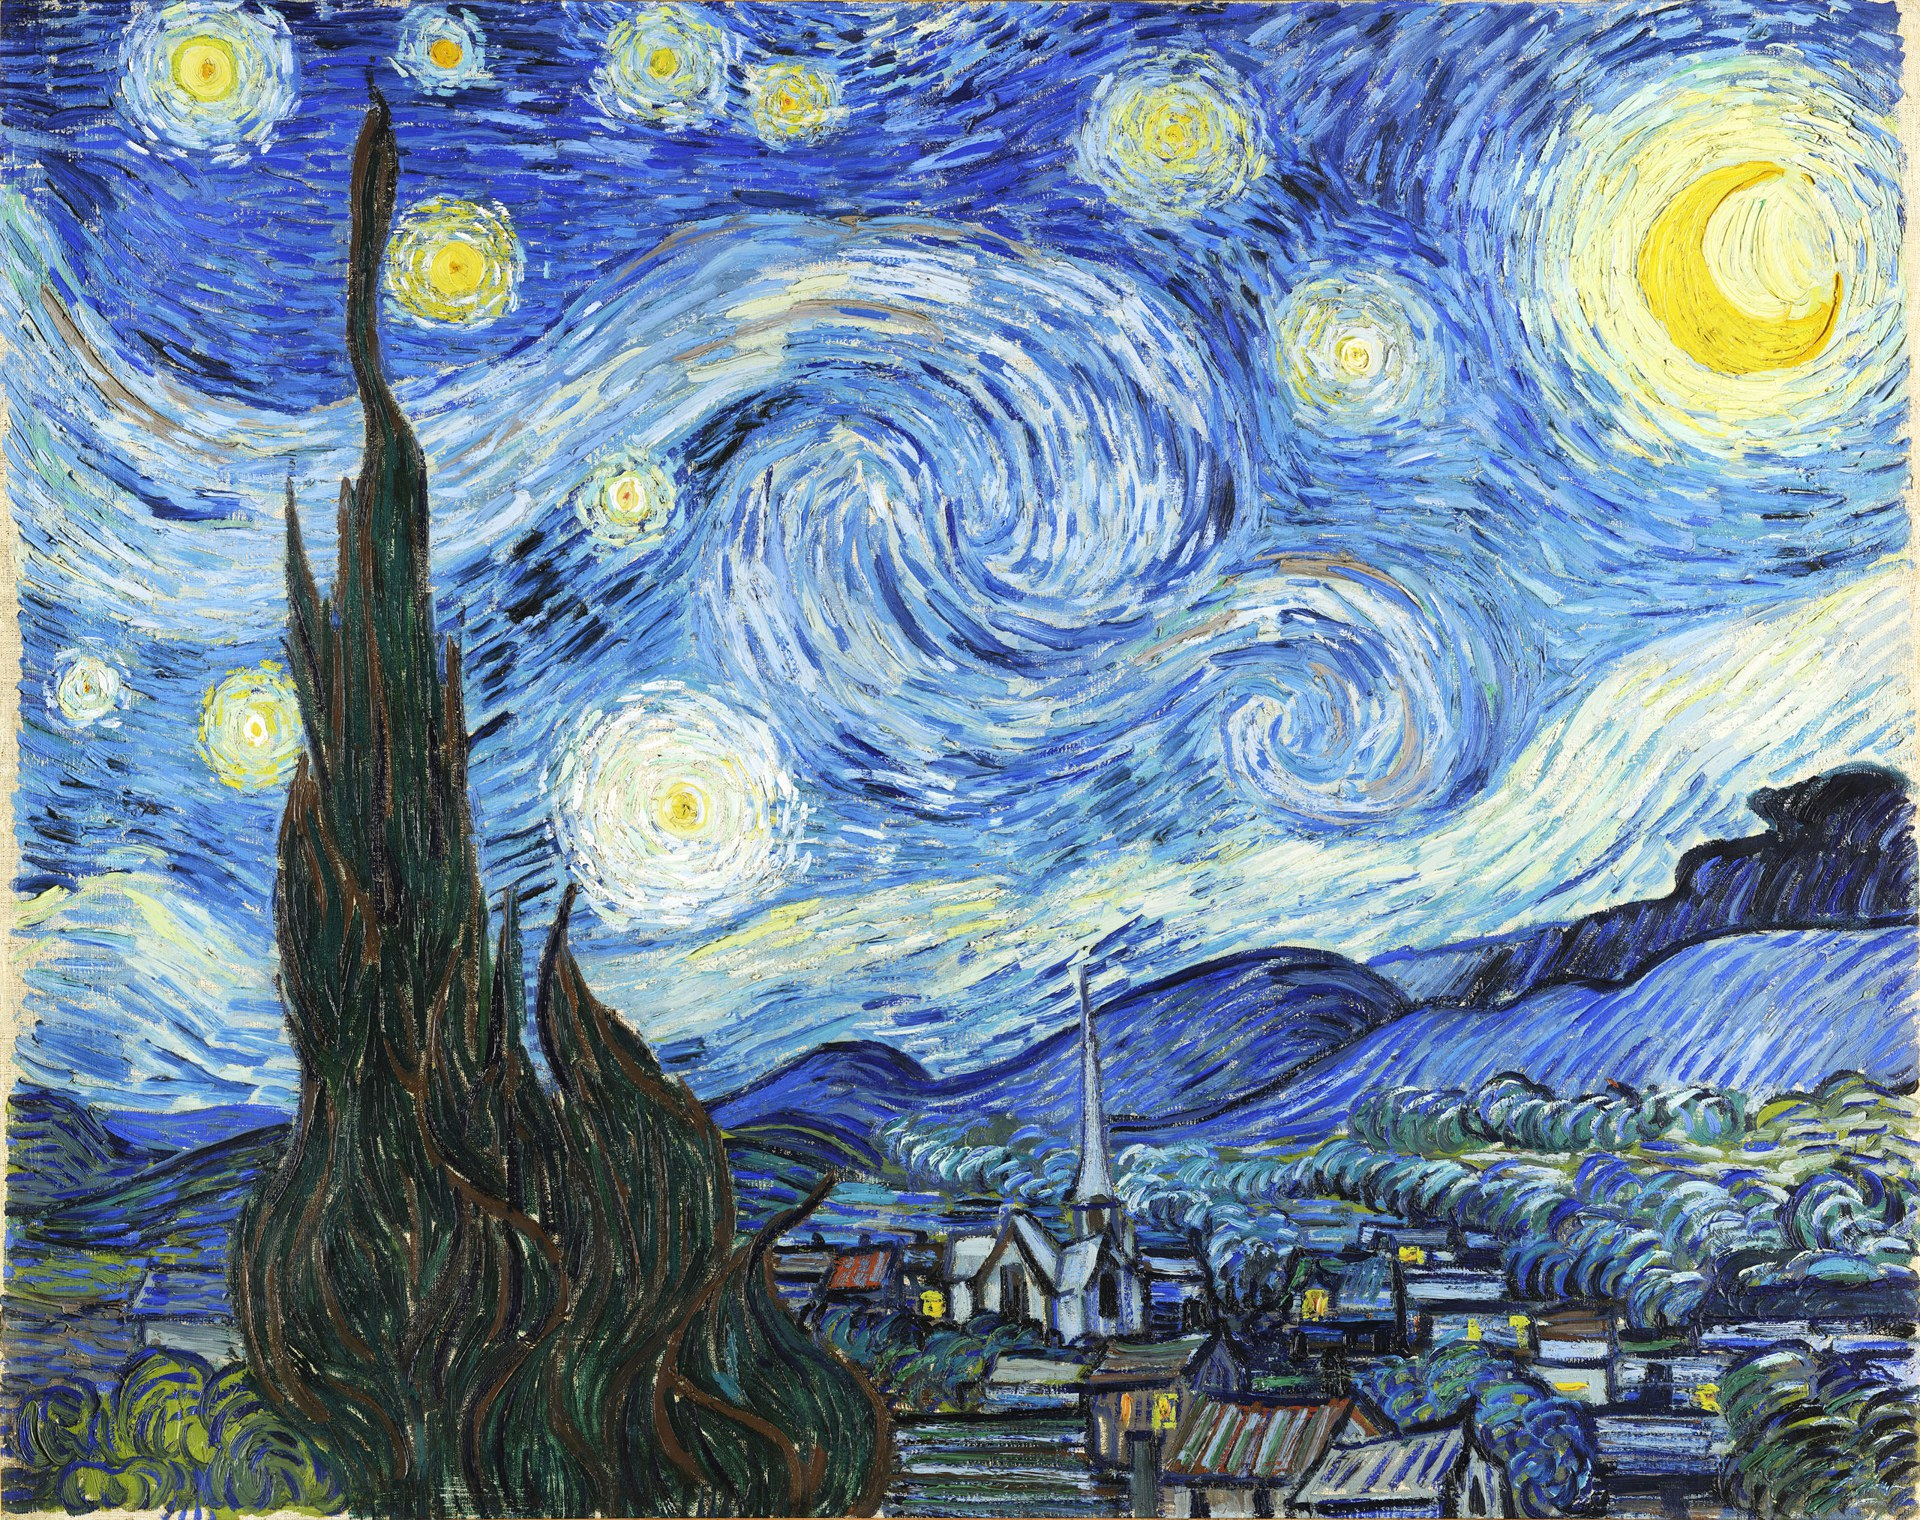 Starry Night Jigsaw Puzzle image